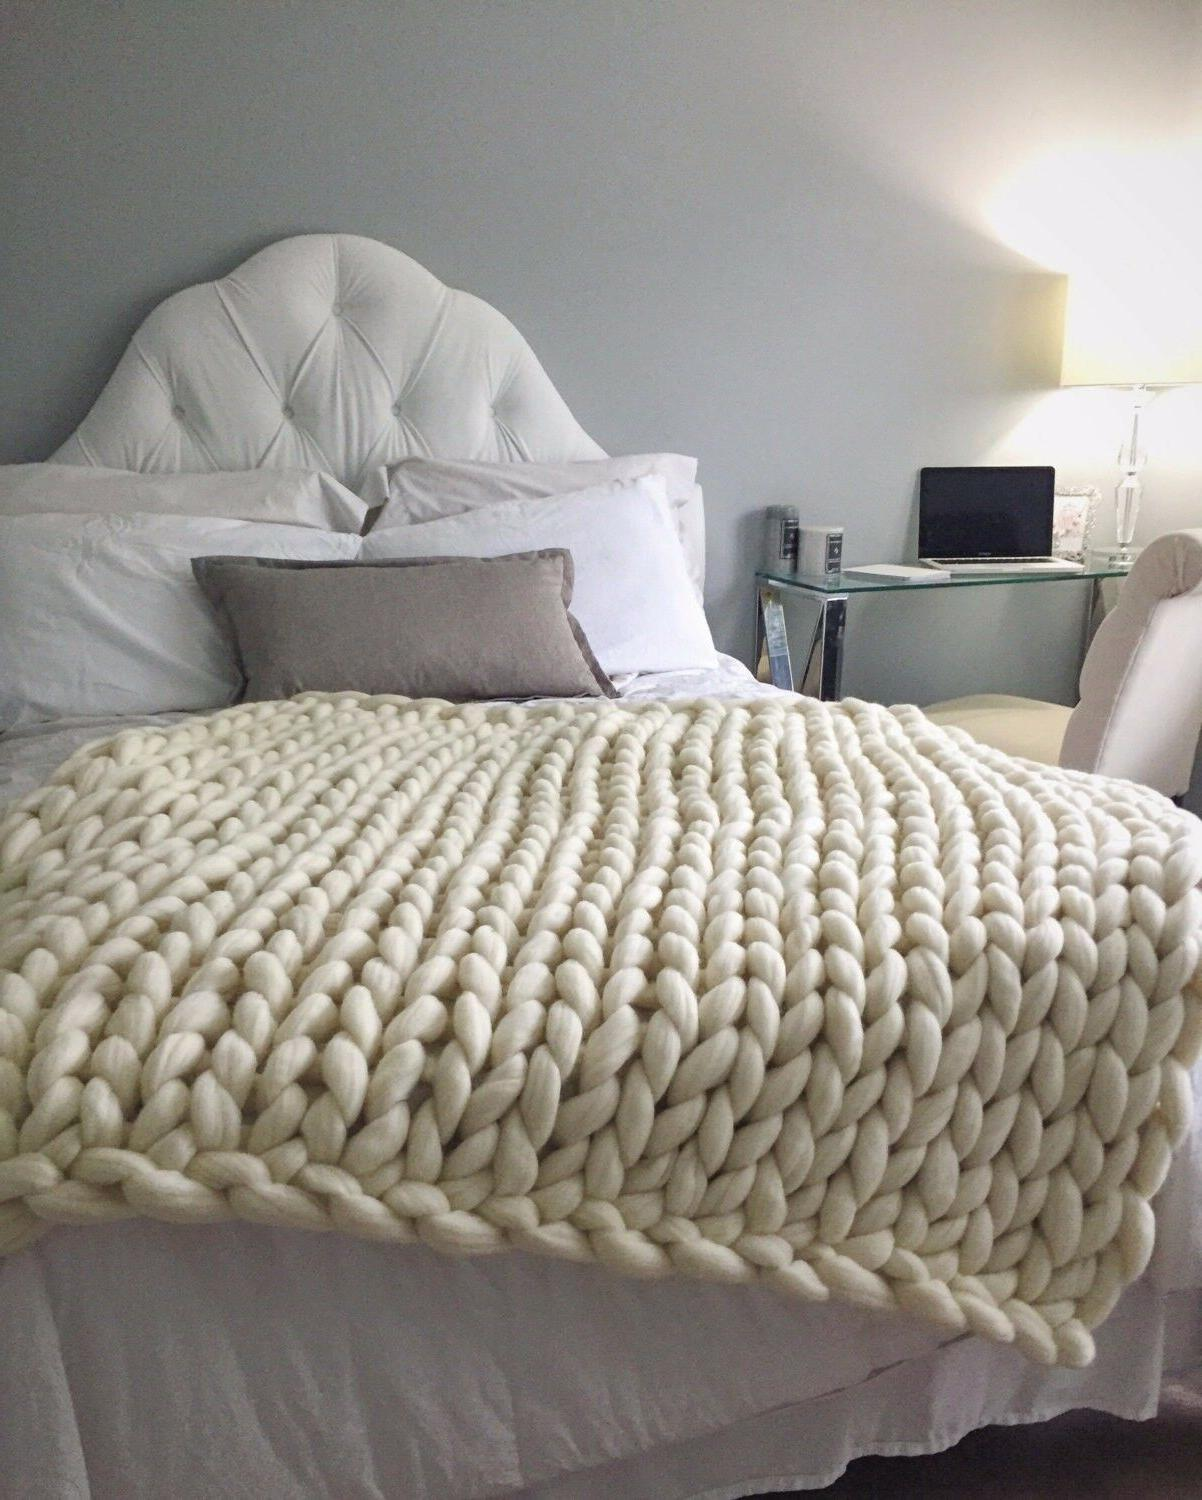 30 x 50in, US Top Quality Merino Wool Chunky Knit Blanket, H